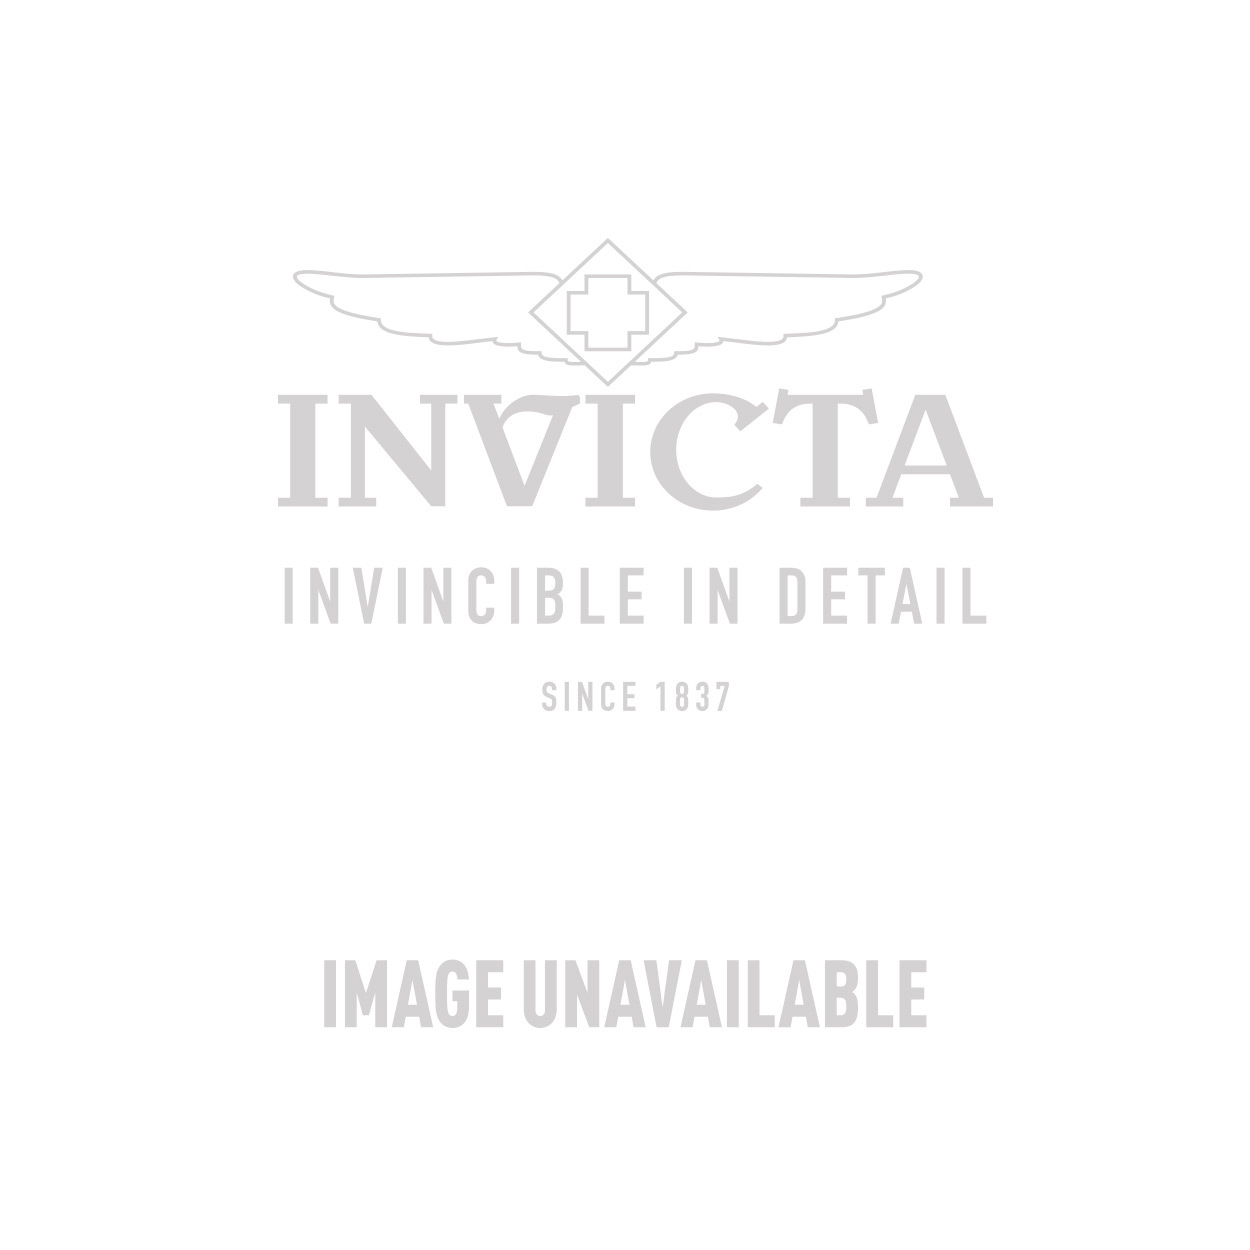 Invicta Specialty Swiss Movement Quartz Watch - Stainless Steel case Stainless Steel band - Model 6621